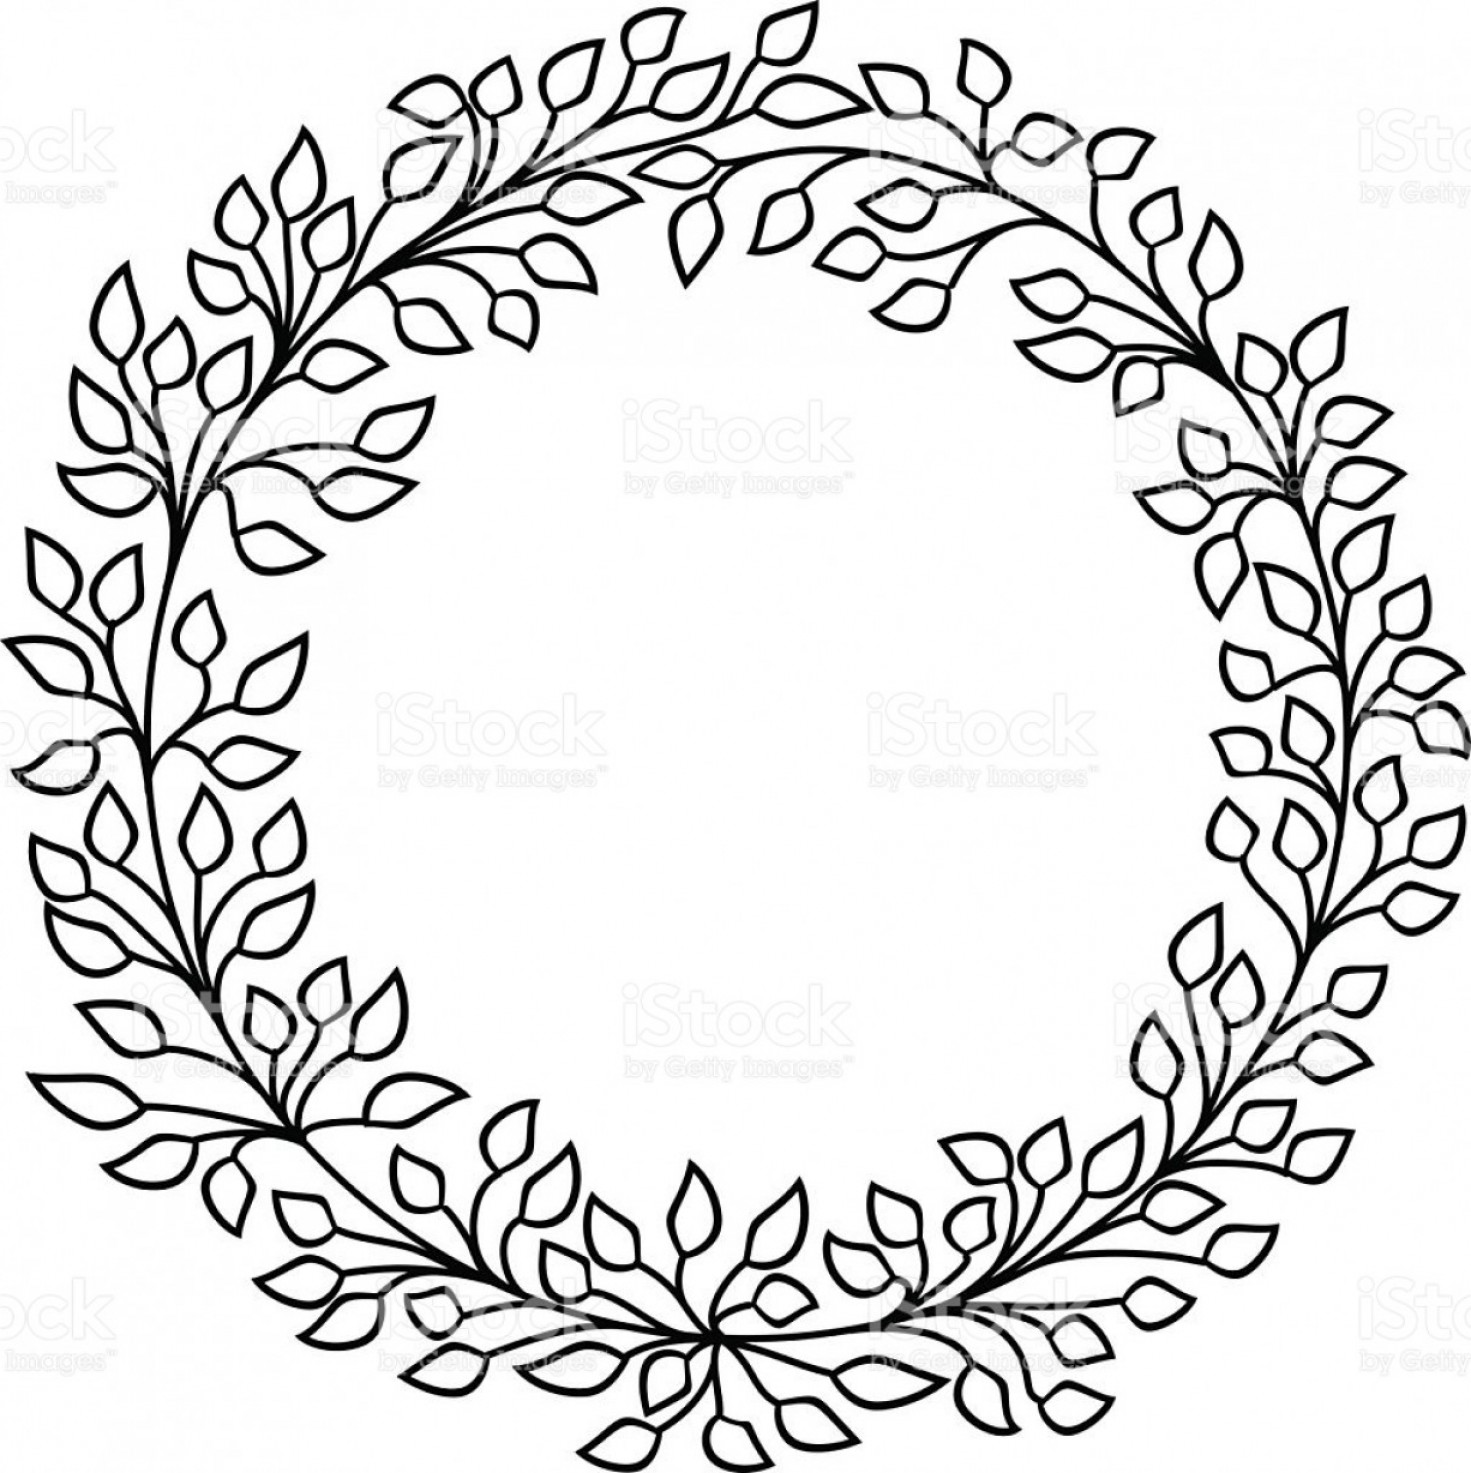 1471x1473 Half Leaf Wreath Vector Hoodamathrun